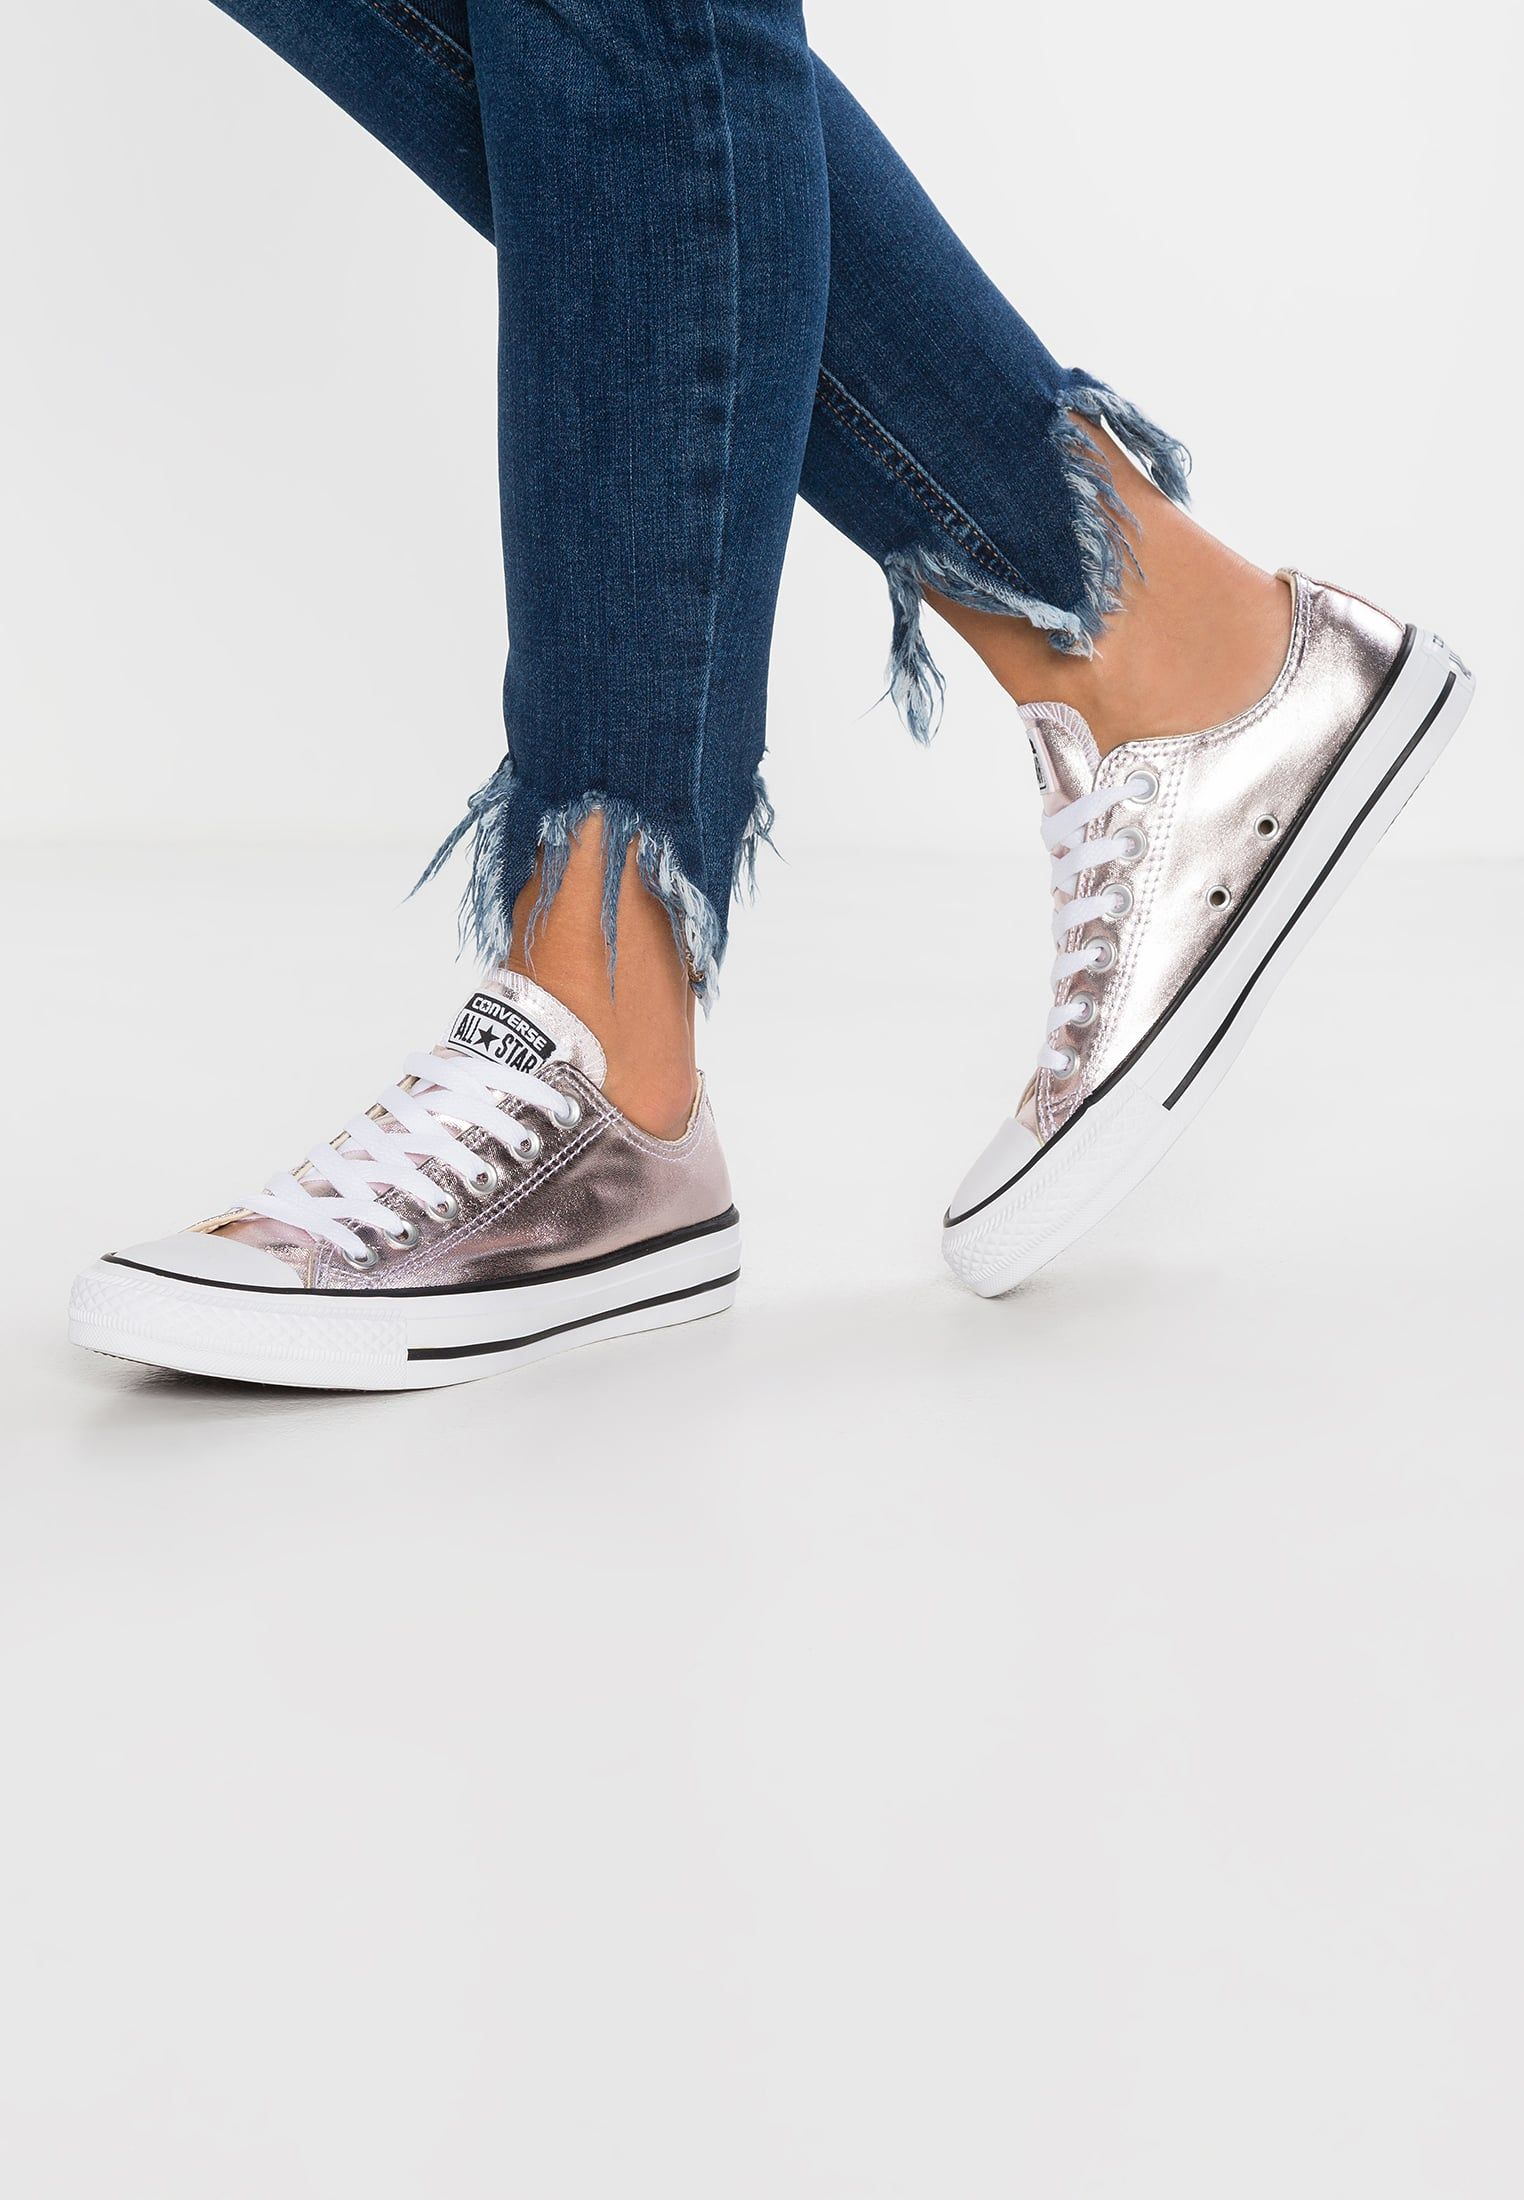 cdf6ced5c4343 Converse CHUCK TAYLOR ALL STAR METALLIC CANVAS - Baskets basses - rose  quartz white black - ZALANDO.FR